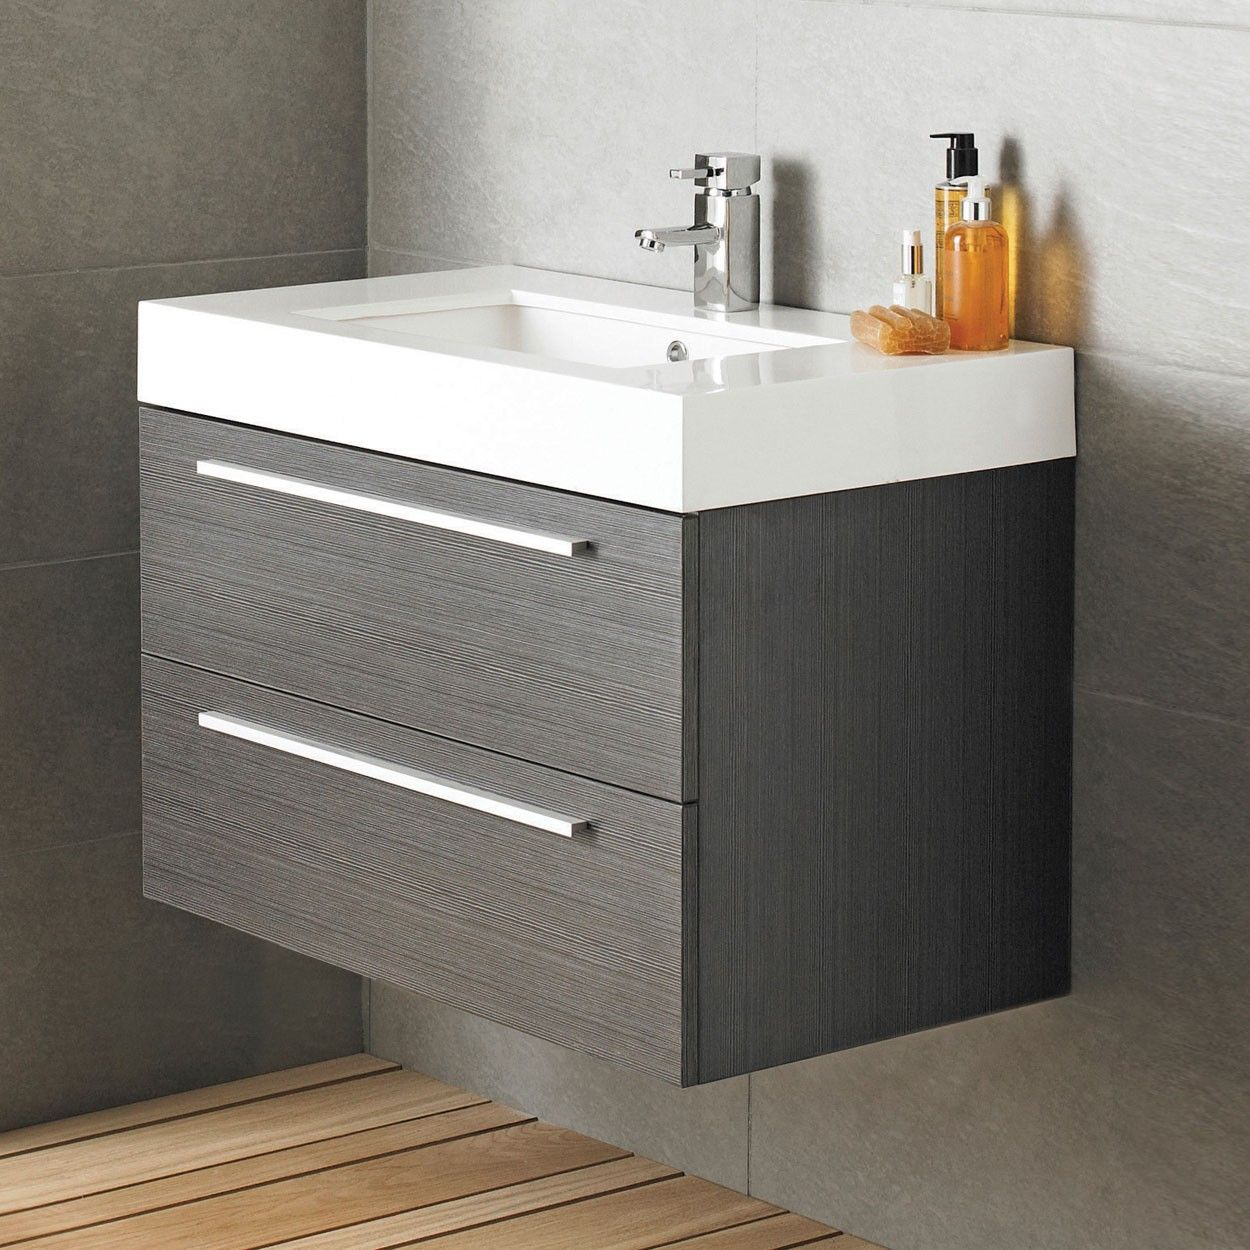 Vienna wall mounted vanity unit 800mm wide textured grey - Designer wall hung bathroom vanity units ...